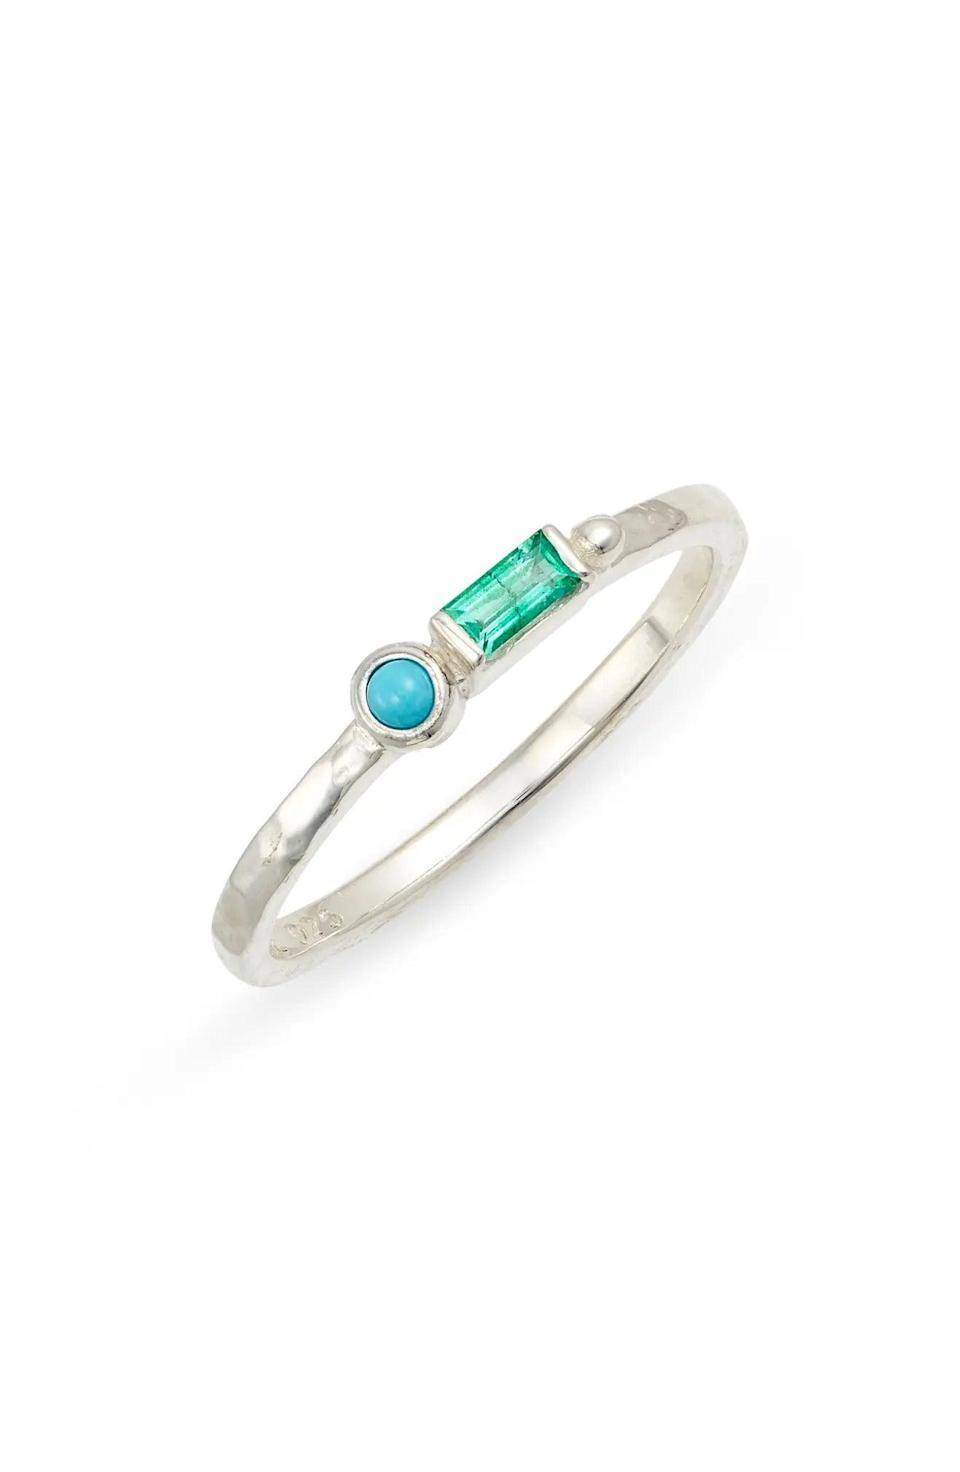 """<h2>December: Turquoise<br></h2><br><strong>The Signs: Sagittarius & Capricorn<br></strong><br>""""Turquoise was one of the first gemstones ever mined,"""" writes Oldershaw, """"perhaps dating back to 6,000 BC in Egypt's Sinai peninsula."""" (Eyes on the long game? Reminds us of a goal-oriented Capricorn.) It also has a host of unique properties that make it unlike any other gemstone, including its unusual opacity, vein-like inclusions, and singular robin's egg-blue hue. (Reminds us of a Sagittarius' bold, easy-to-identify personality.) <br><br><strong>Anzie</strong> Cleo Emerald & Turquoise Ring, $, available at <a href=""""https://go.skimresources.com/?id=30283X879131&url=https%3A%2F%2Fwww.nordstrom.com%2Fs%2Fanzie-cleo-emerald-turquoise-ring%2F5565847"""" rel=""""nofollow noopener"""" target=""""_blank"""" data-ylk=""""slk:Nordstrom"""" class=""""link rapid-noclick-resp"""">Nordstrom</a>"""